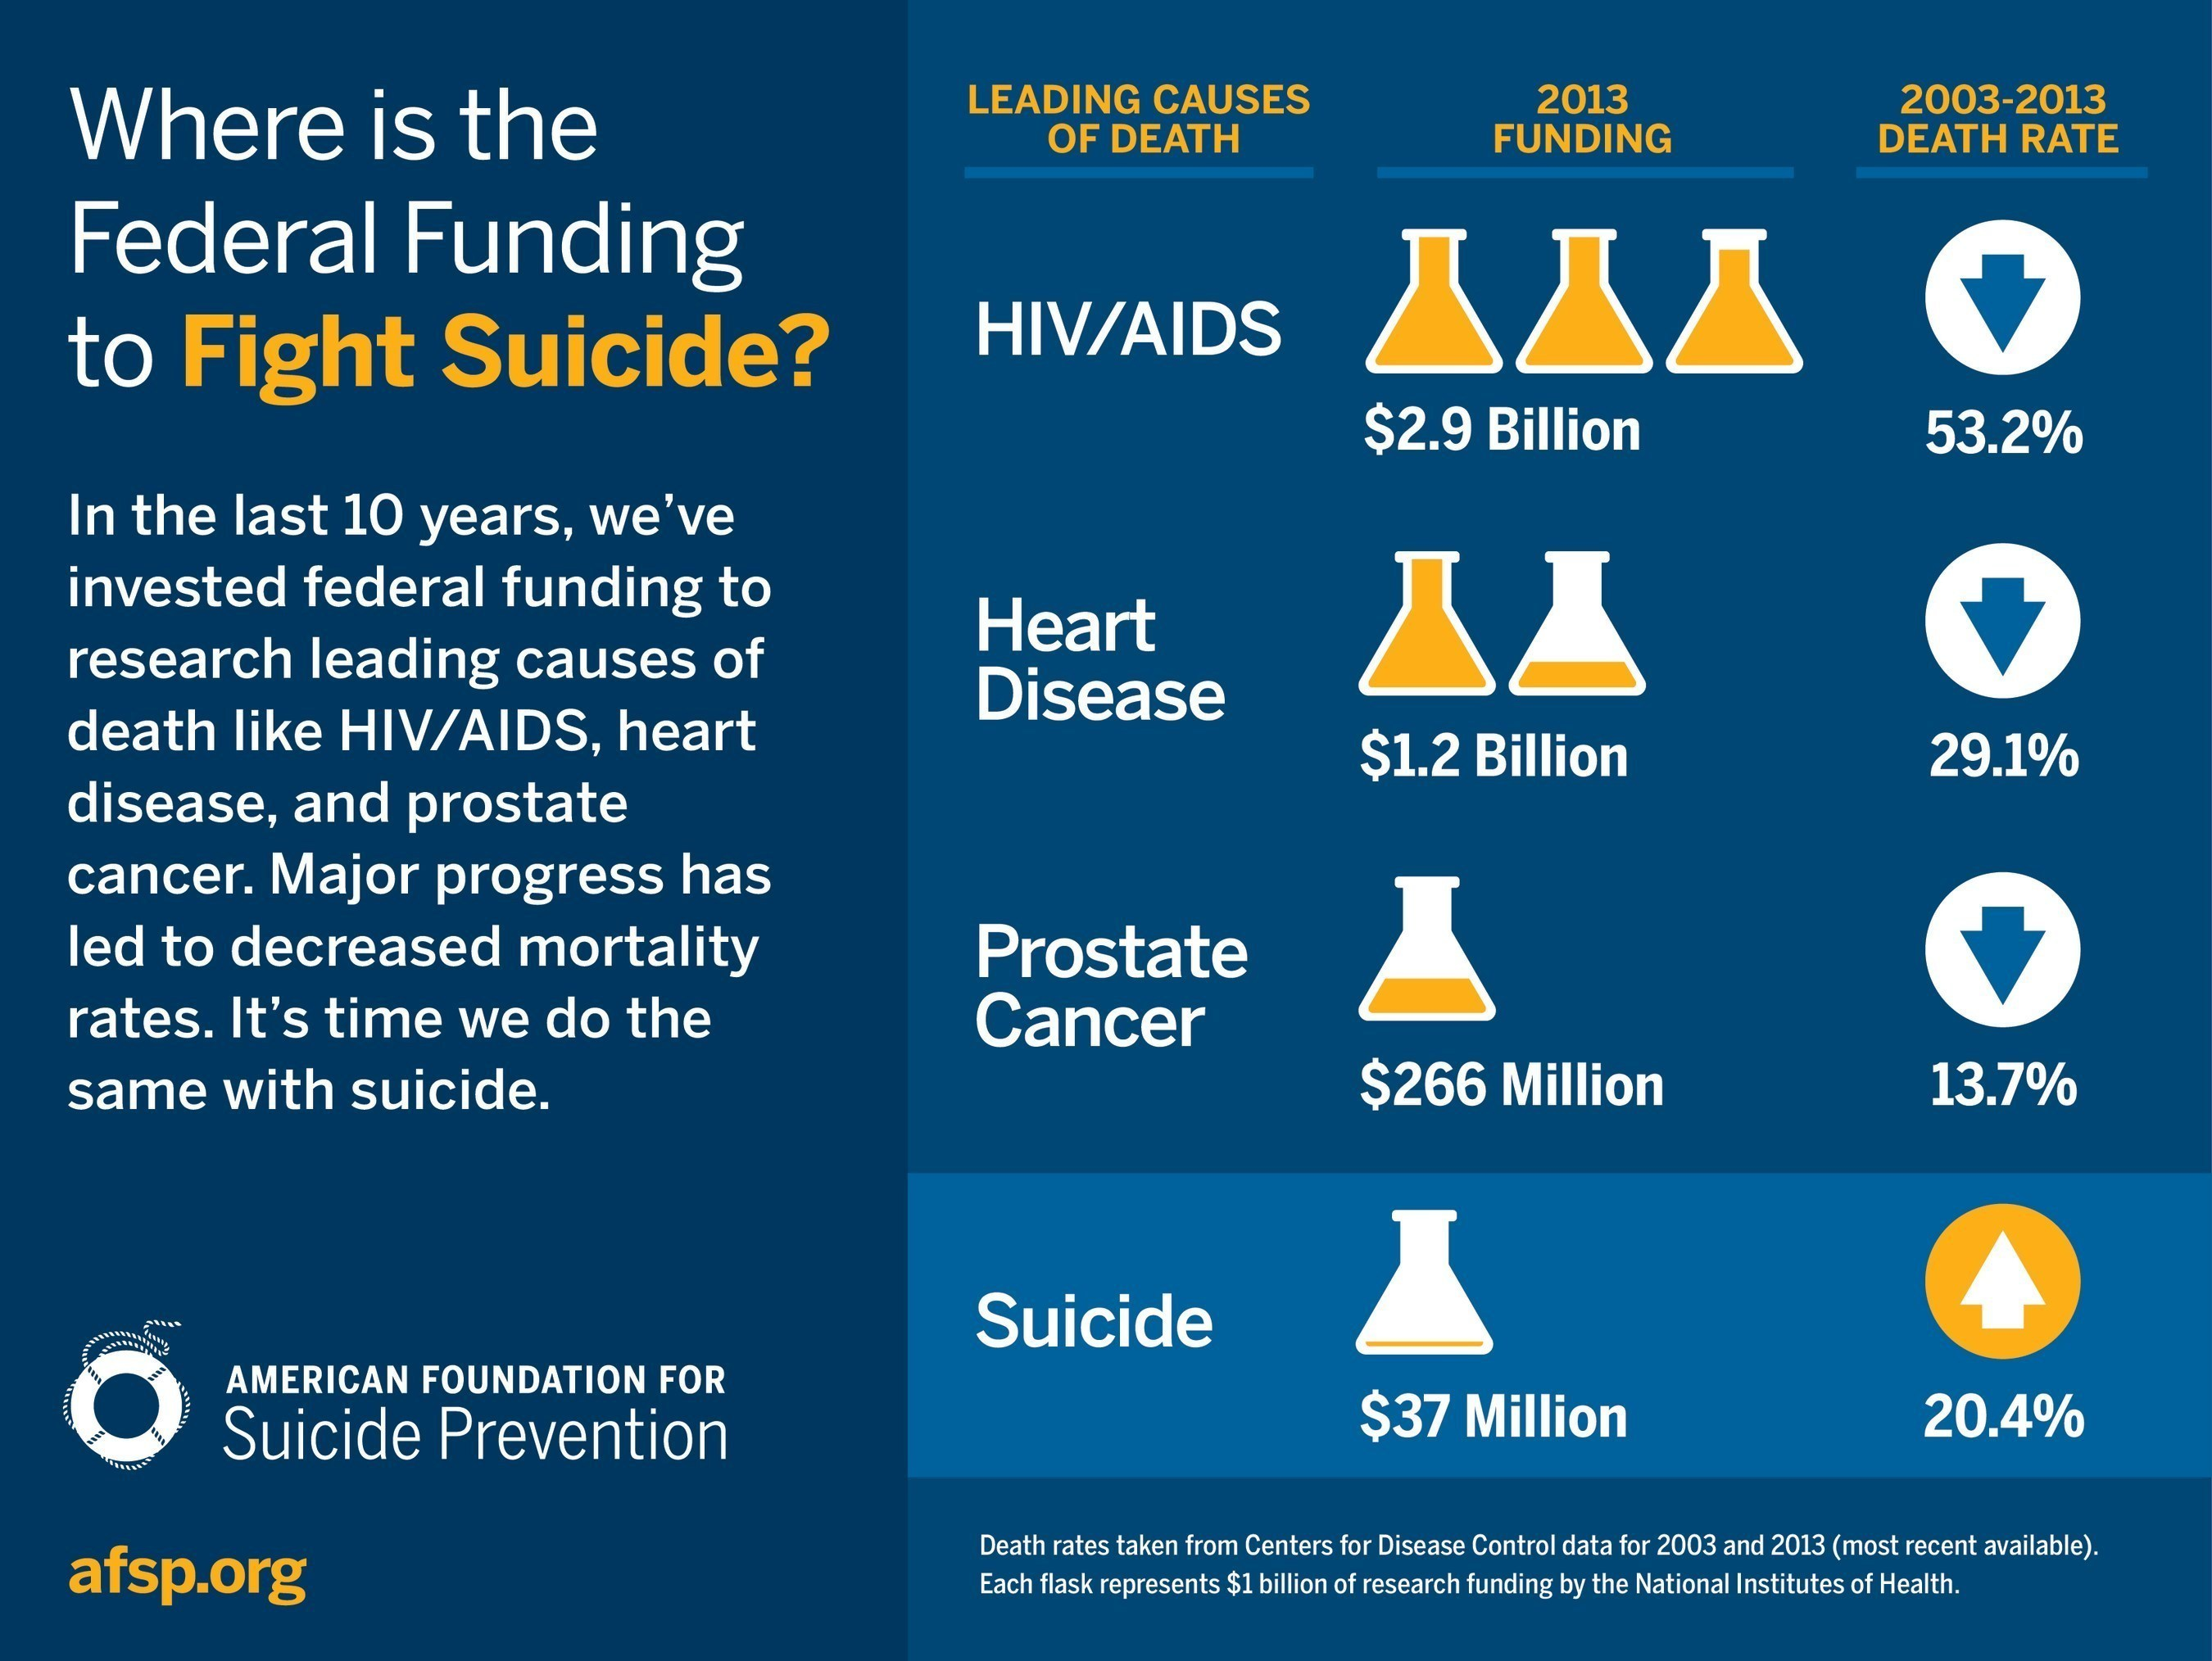 Source: American Foundation for Suicide Prevention